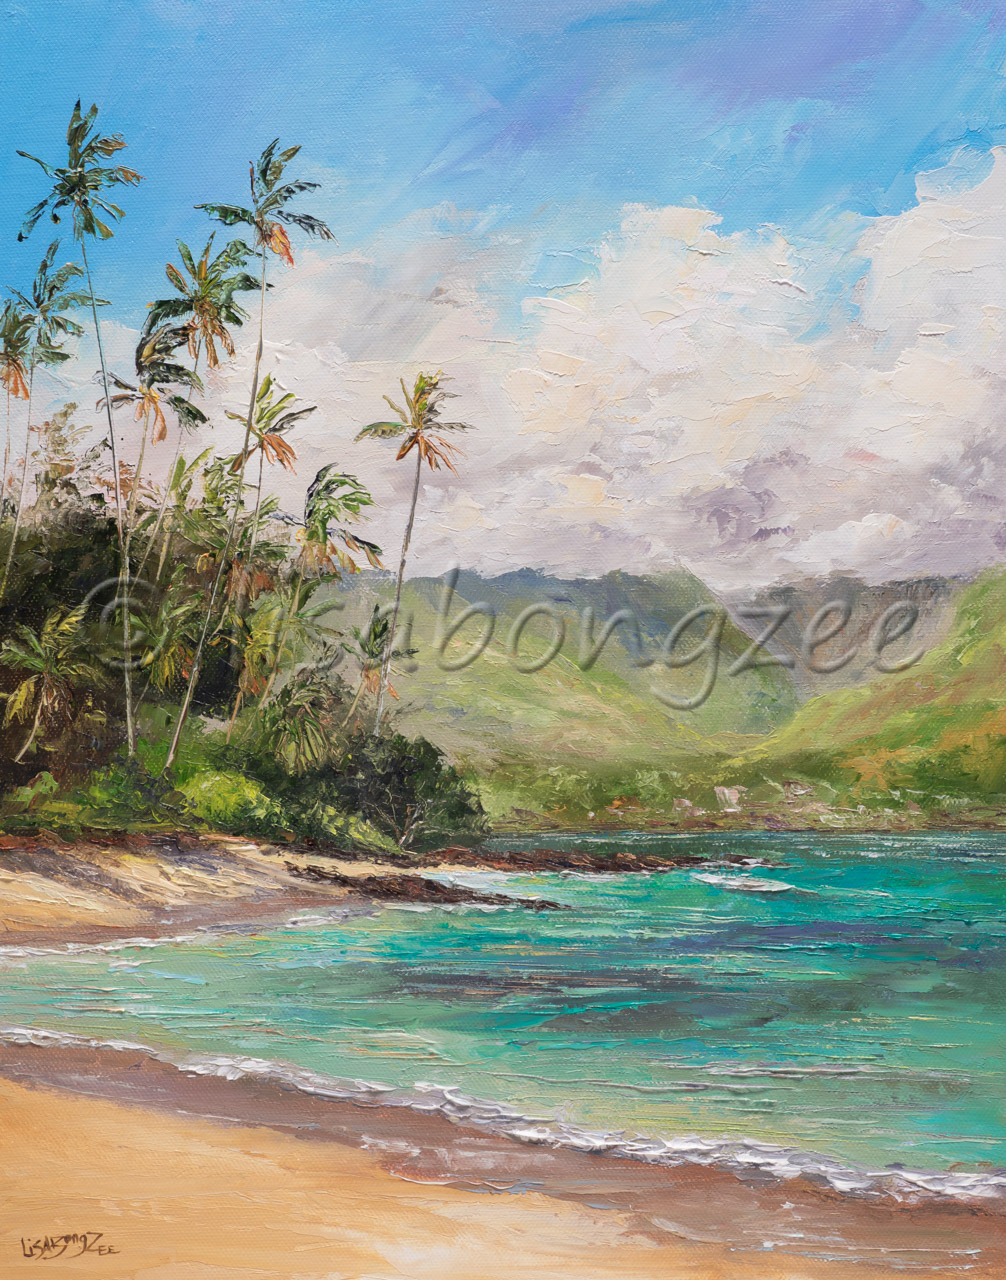 original oil of a calm teal ocean with multiple palm tress and mountain view to the left.